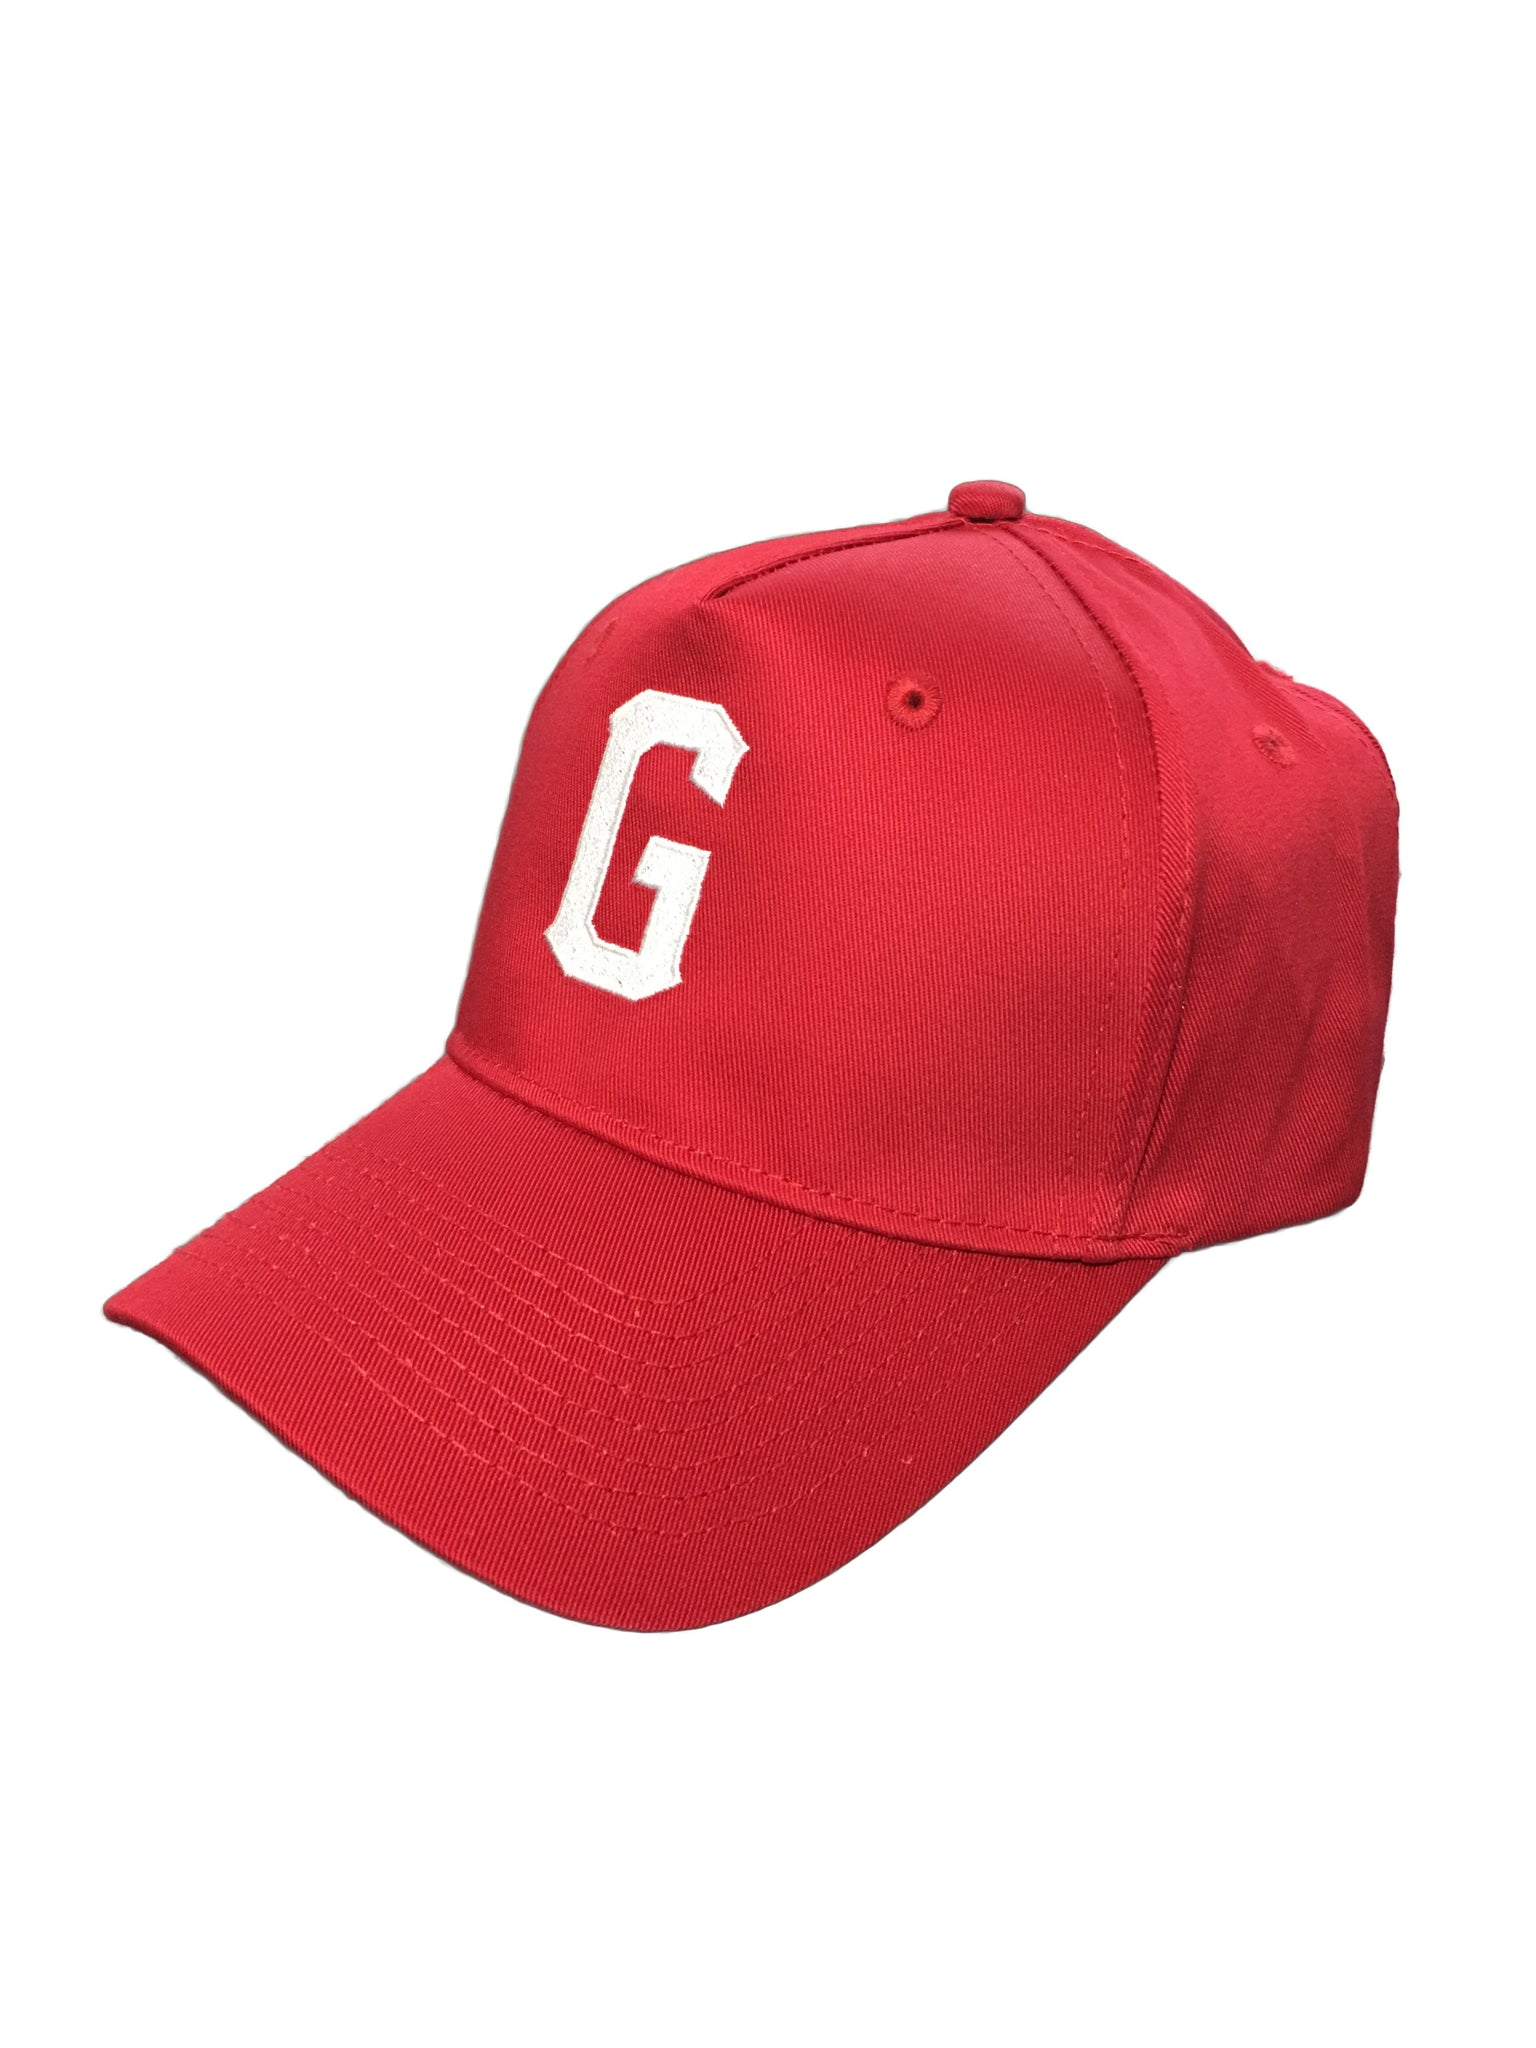 """G"" Logo Baseball Cap - Red"